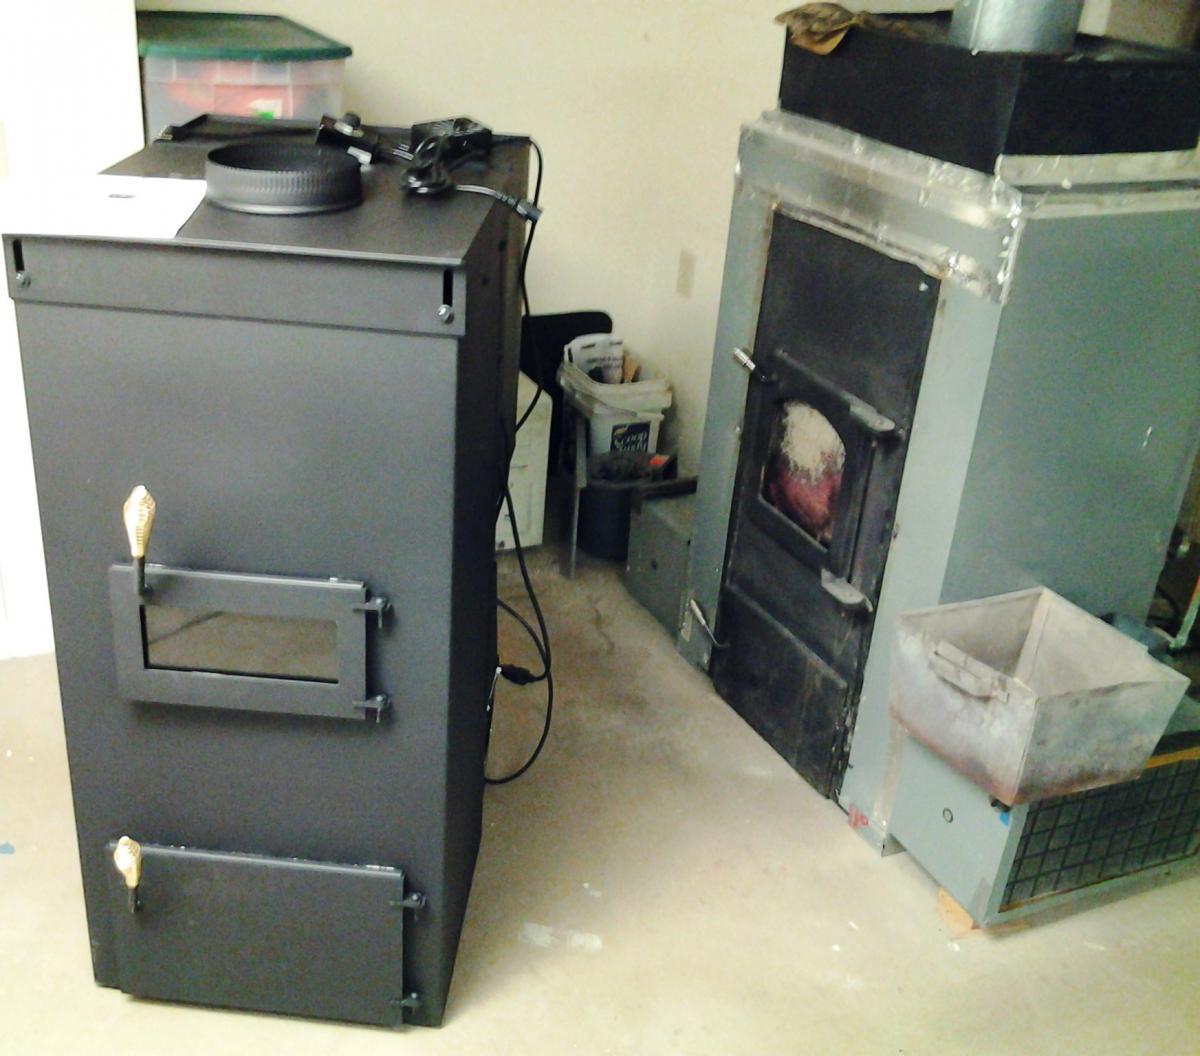 New and old stove.jpg